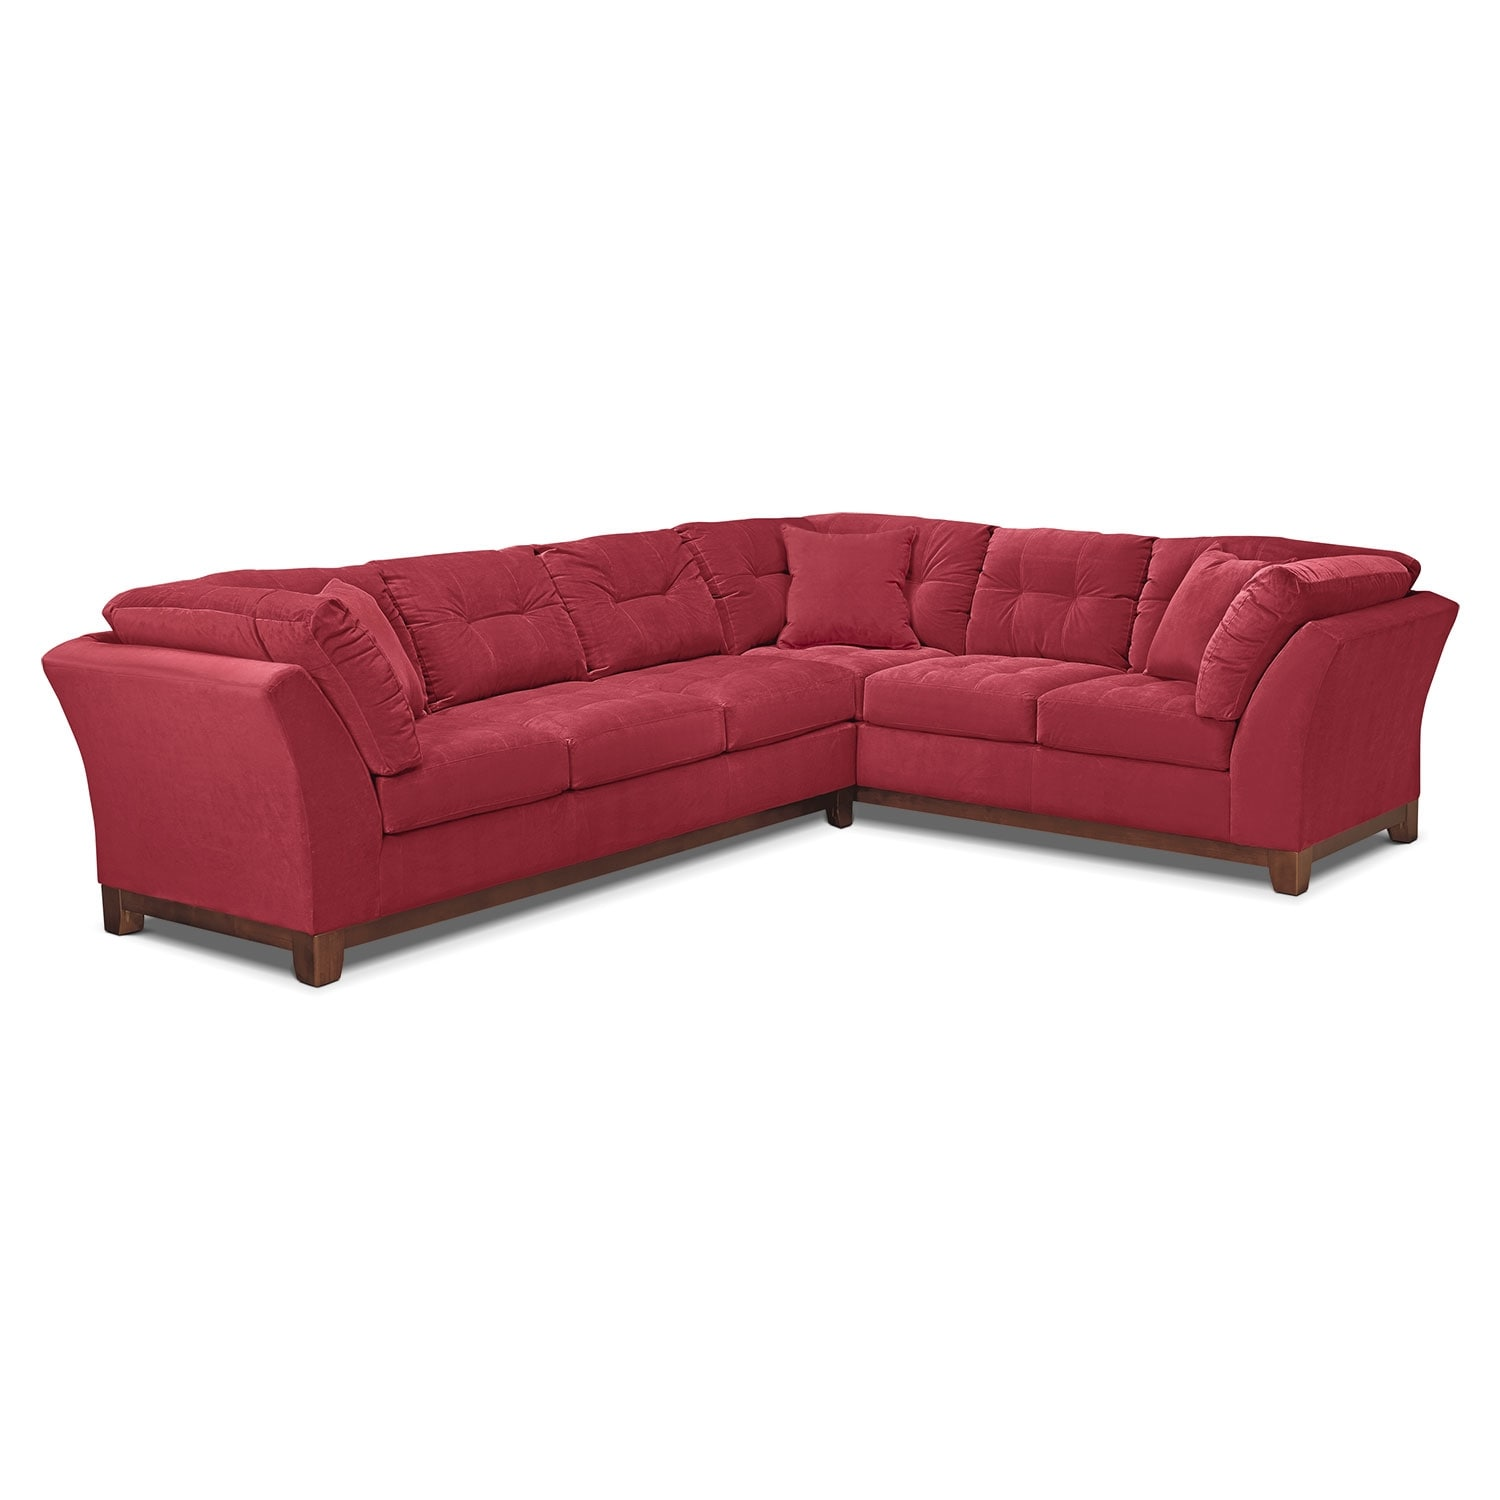 Sebring 2-Piece Sectional with Left-Facing Sofa - Poppy